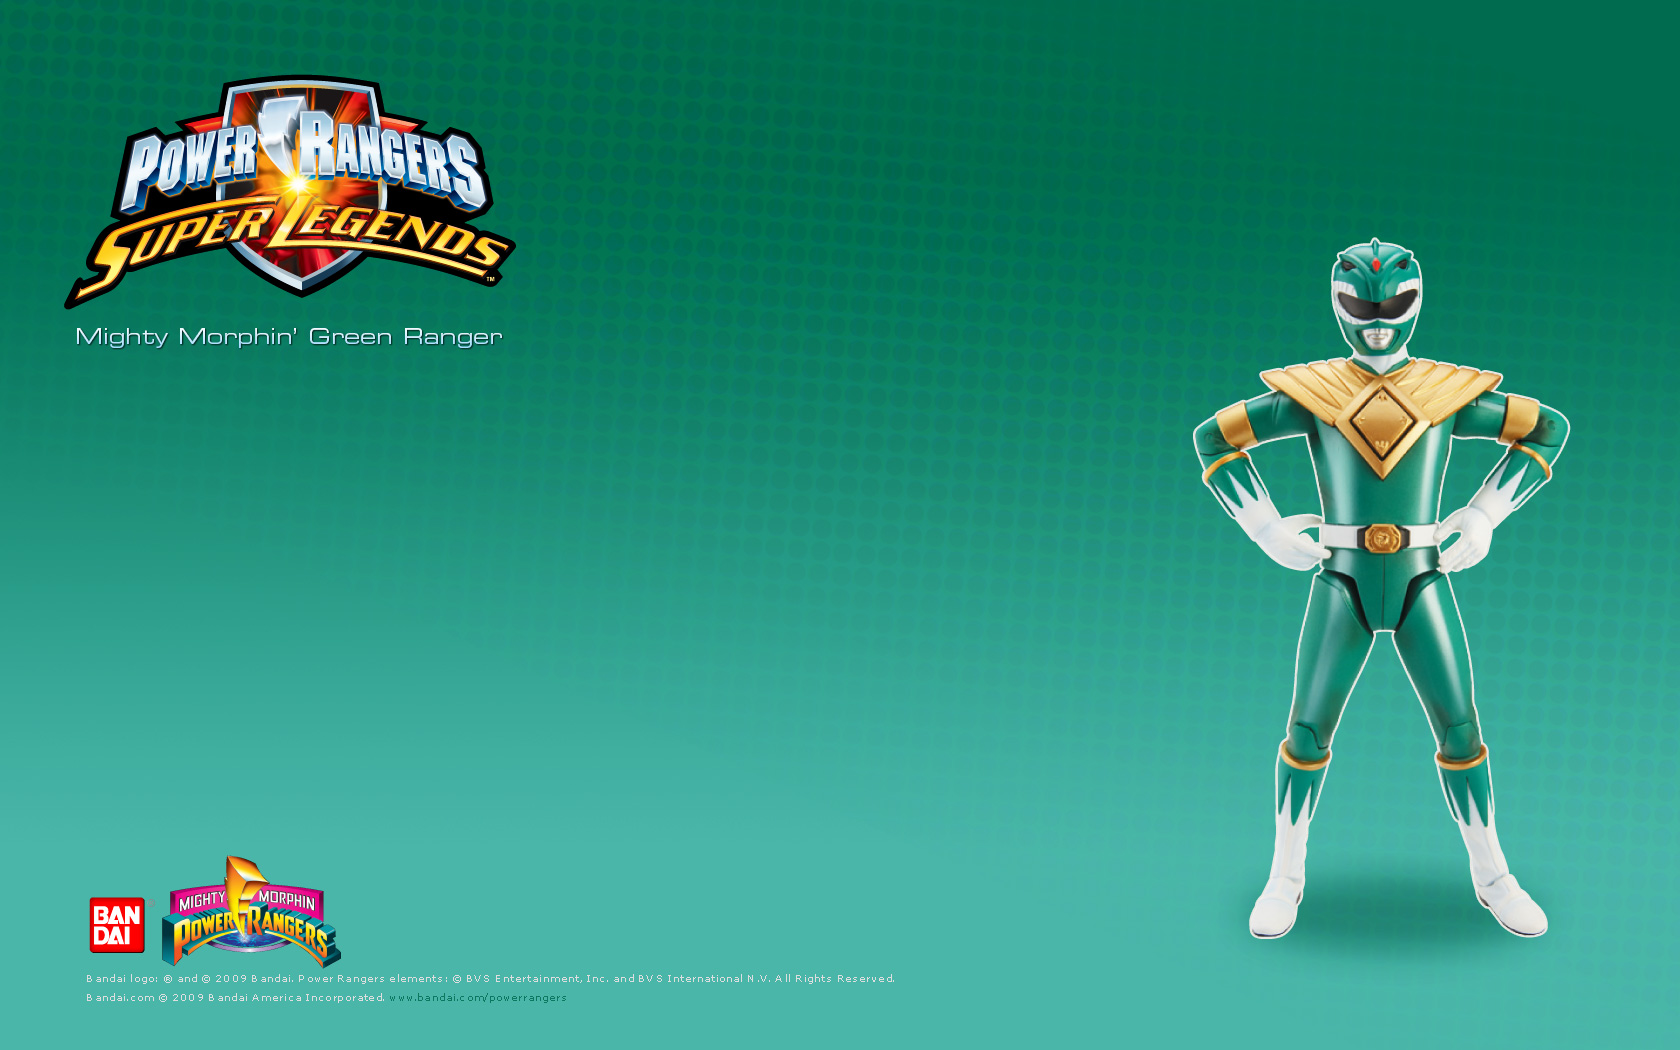 Mighty Morphin Power Rangers Wallpapers Hd Wallpapers 1680x1050